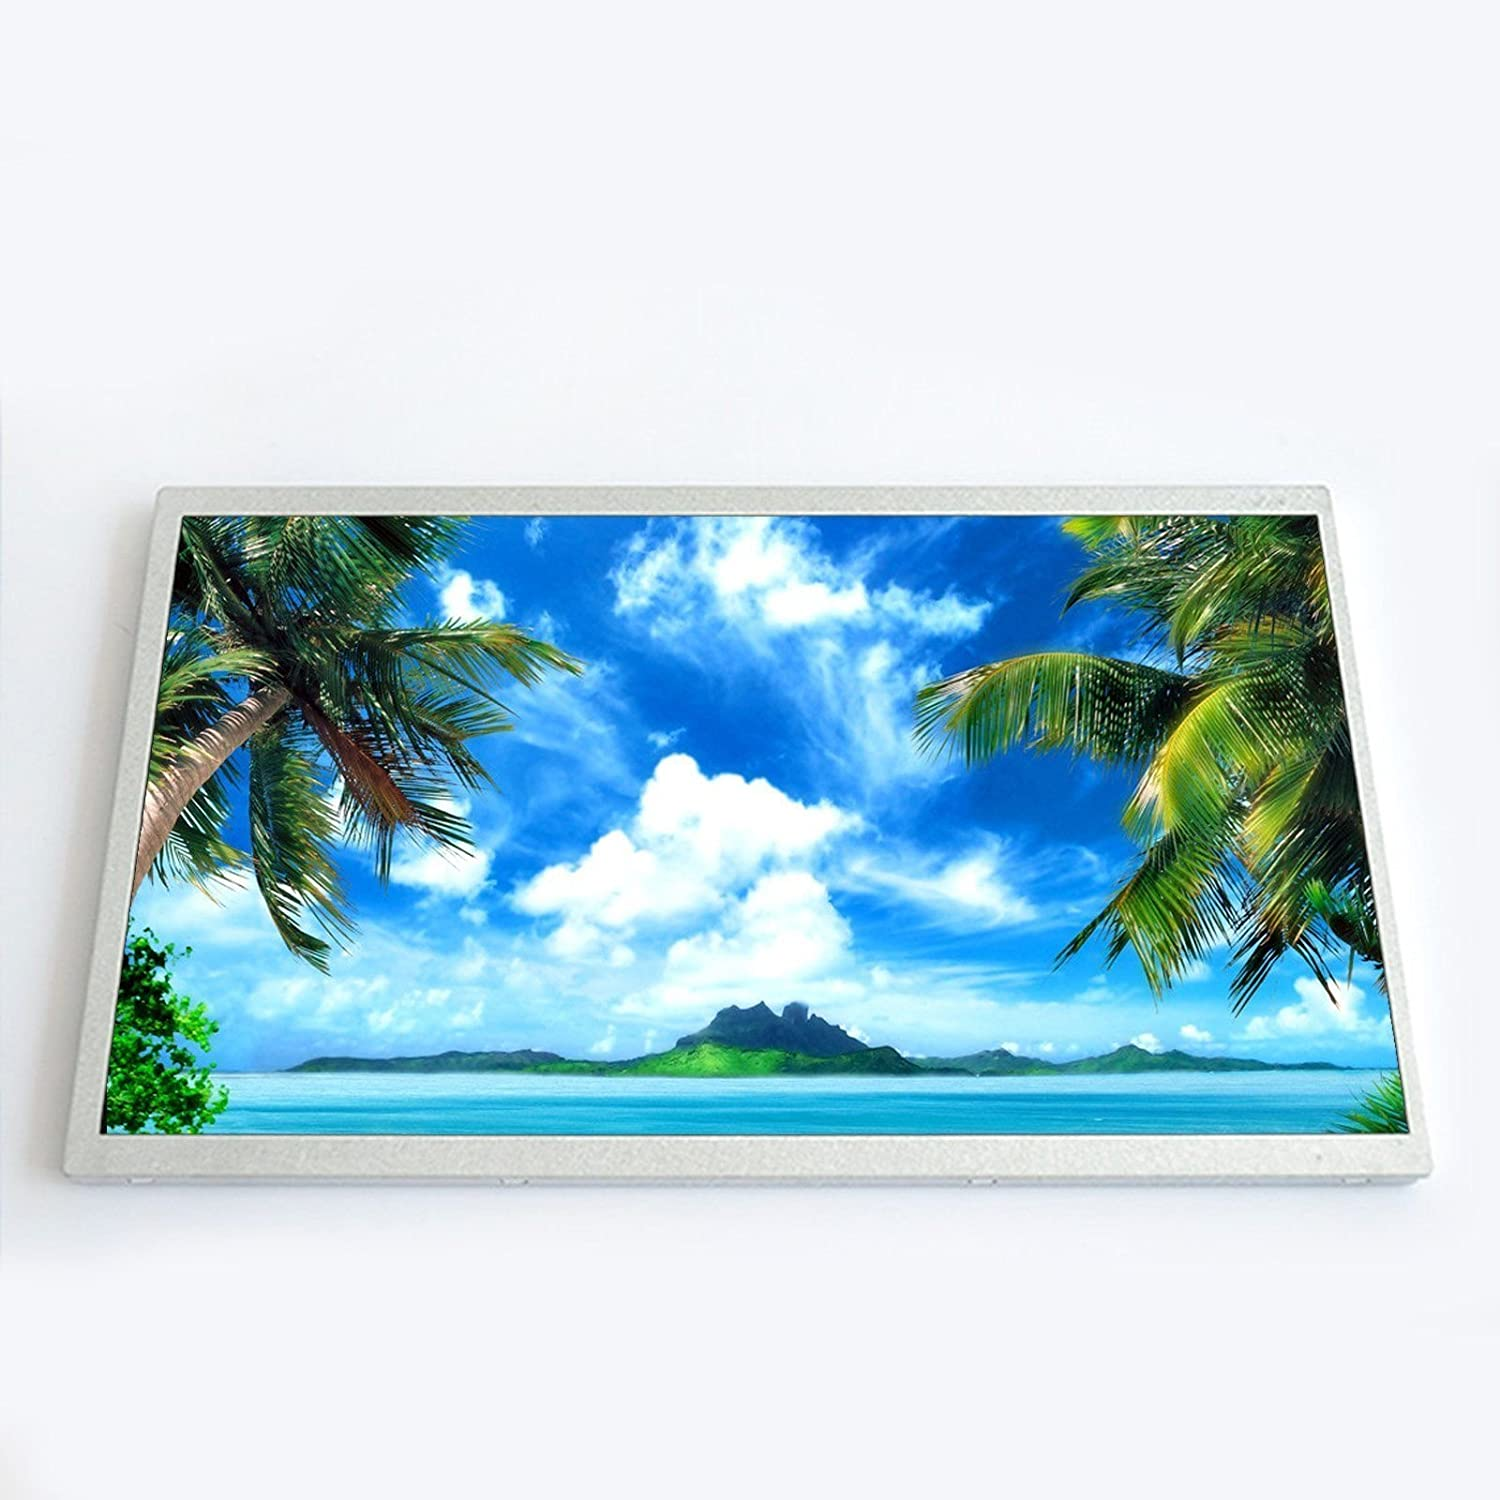 LCDOLED® 14 0 inch LED LCD Screen Display B140HAN01 2 For